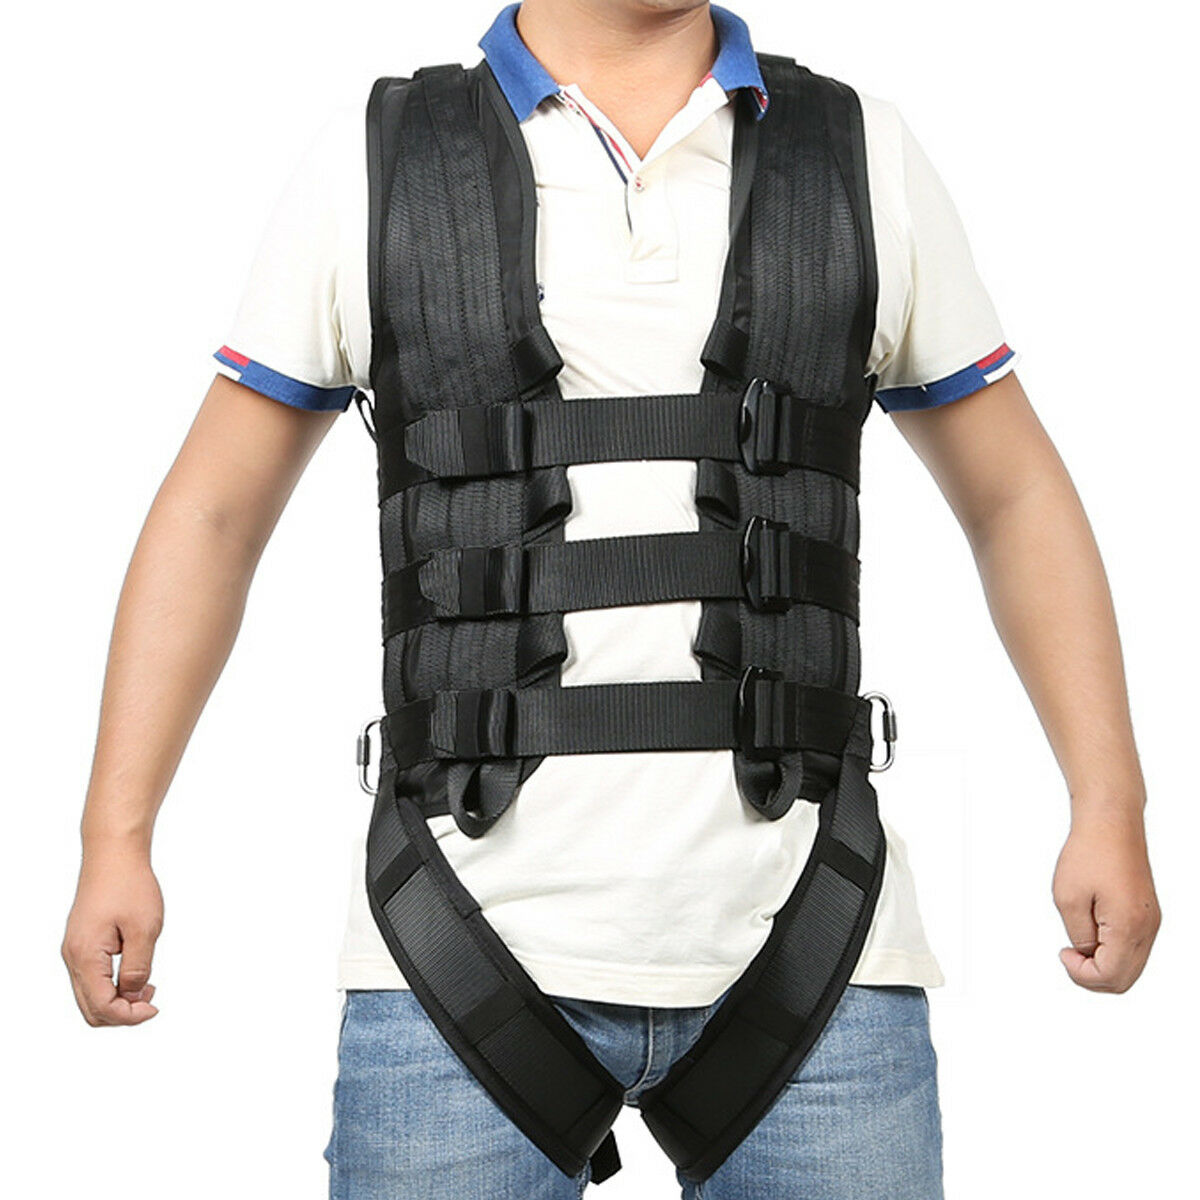 Heavy Duty Full Body Harness Abseiling Stunt Show Safety Fall Predection Gear